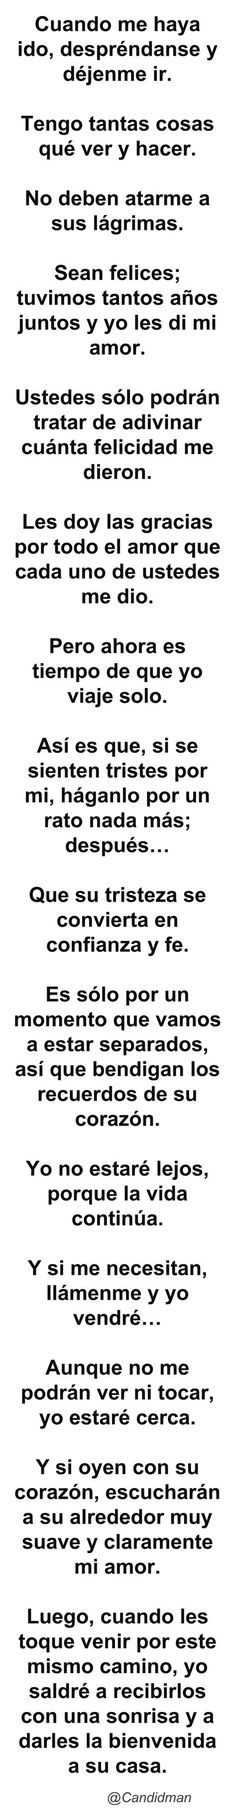 frases Brown Things new brown hair color 2018 A Course In Miracles, Little Bit, Spanish Quotes, More Than Words, Beautiful Words, Just In Case, Wise Words, Favorite Quotes, Me Quotes